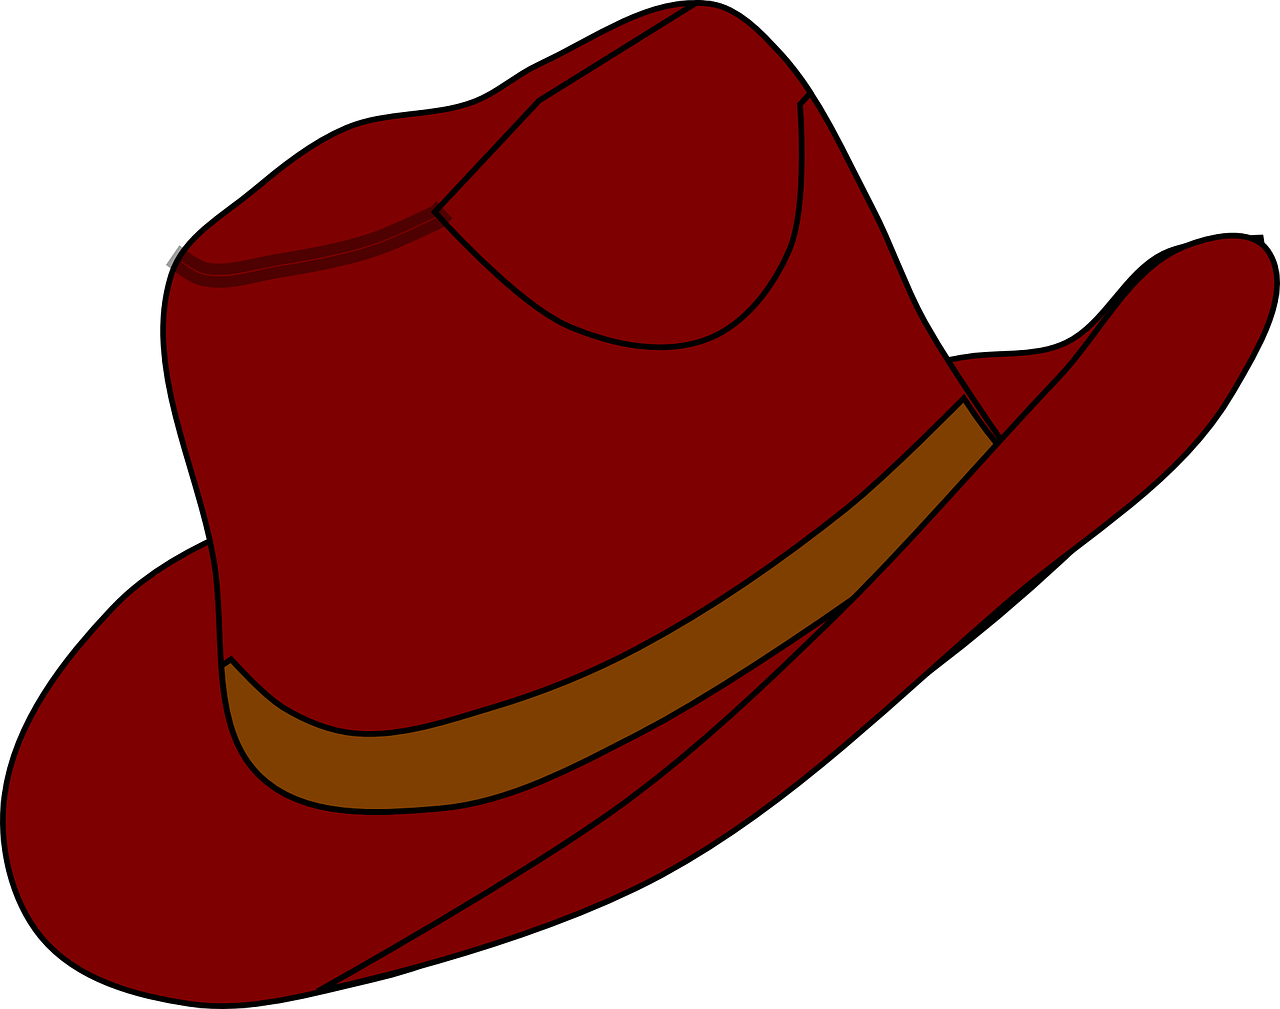 Boots svg draw cowboy. Western boot royalty